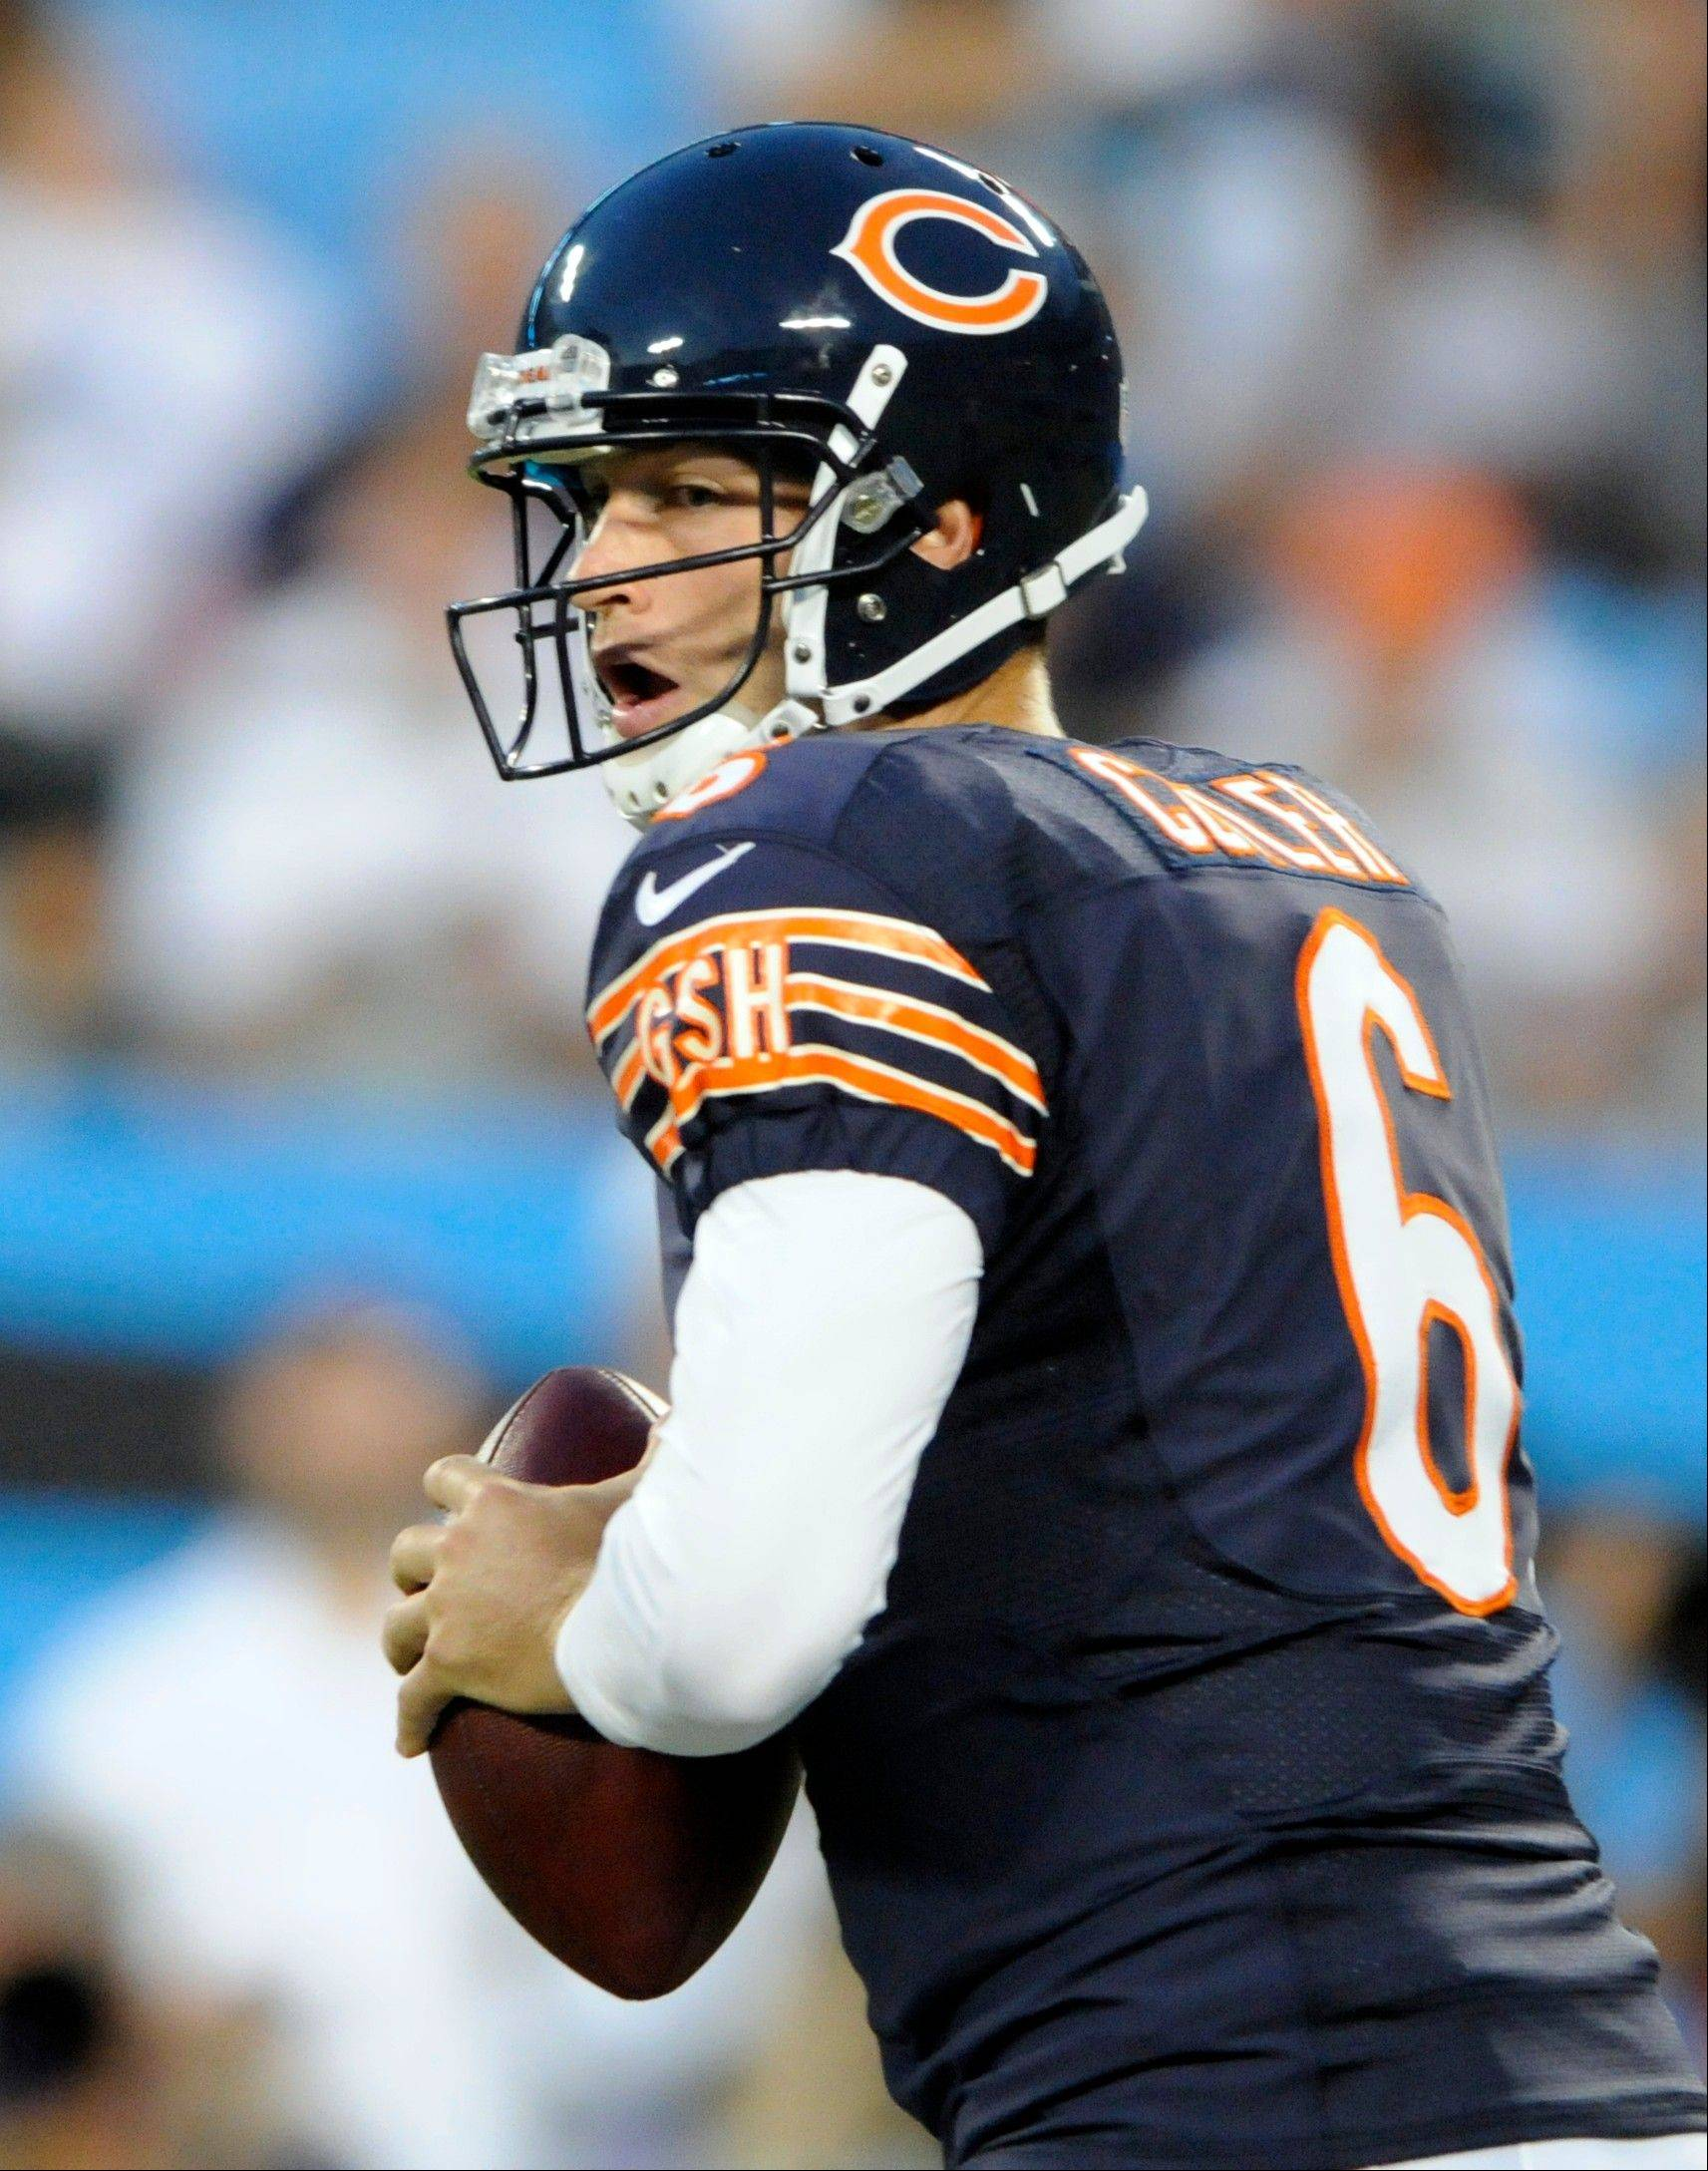 Bears quarterback Jay Cutler looks to pass against the Carolina Panthers during the first half of a preseason NFL football game in Charlotte, N.C., Friday, Aug. 9, 2013.